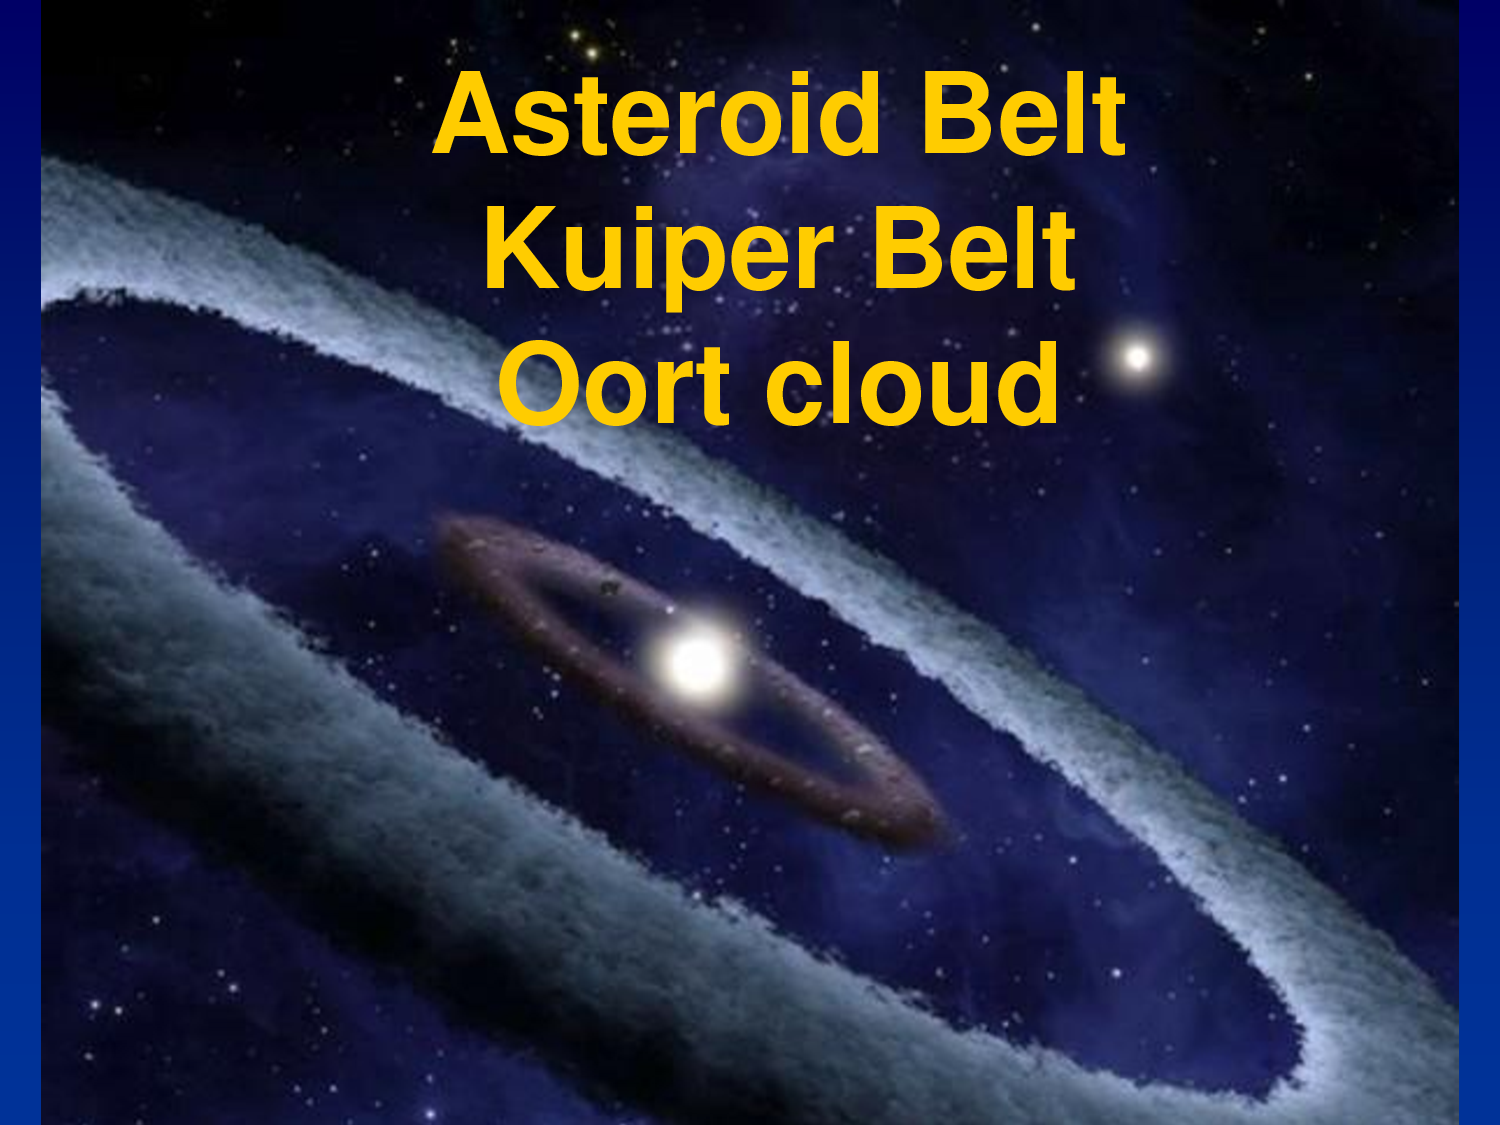 and belt cloud kuiper oort solar system including asteroid belt - photo #22